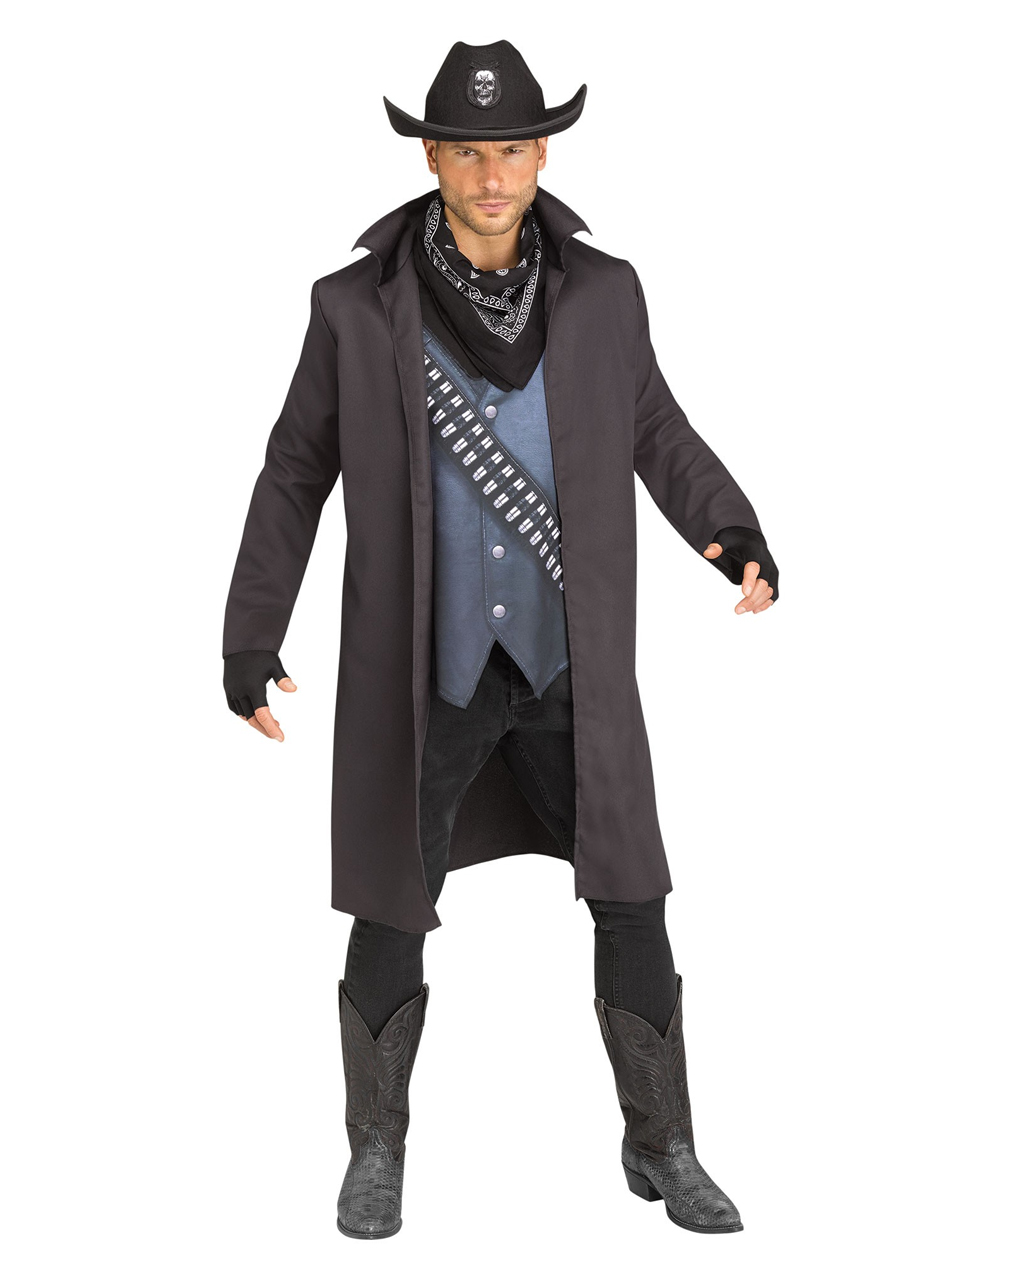 evil cowboy costume halloween disguise | horror-shop